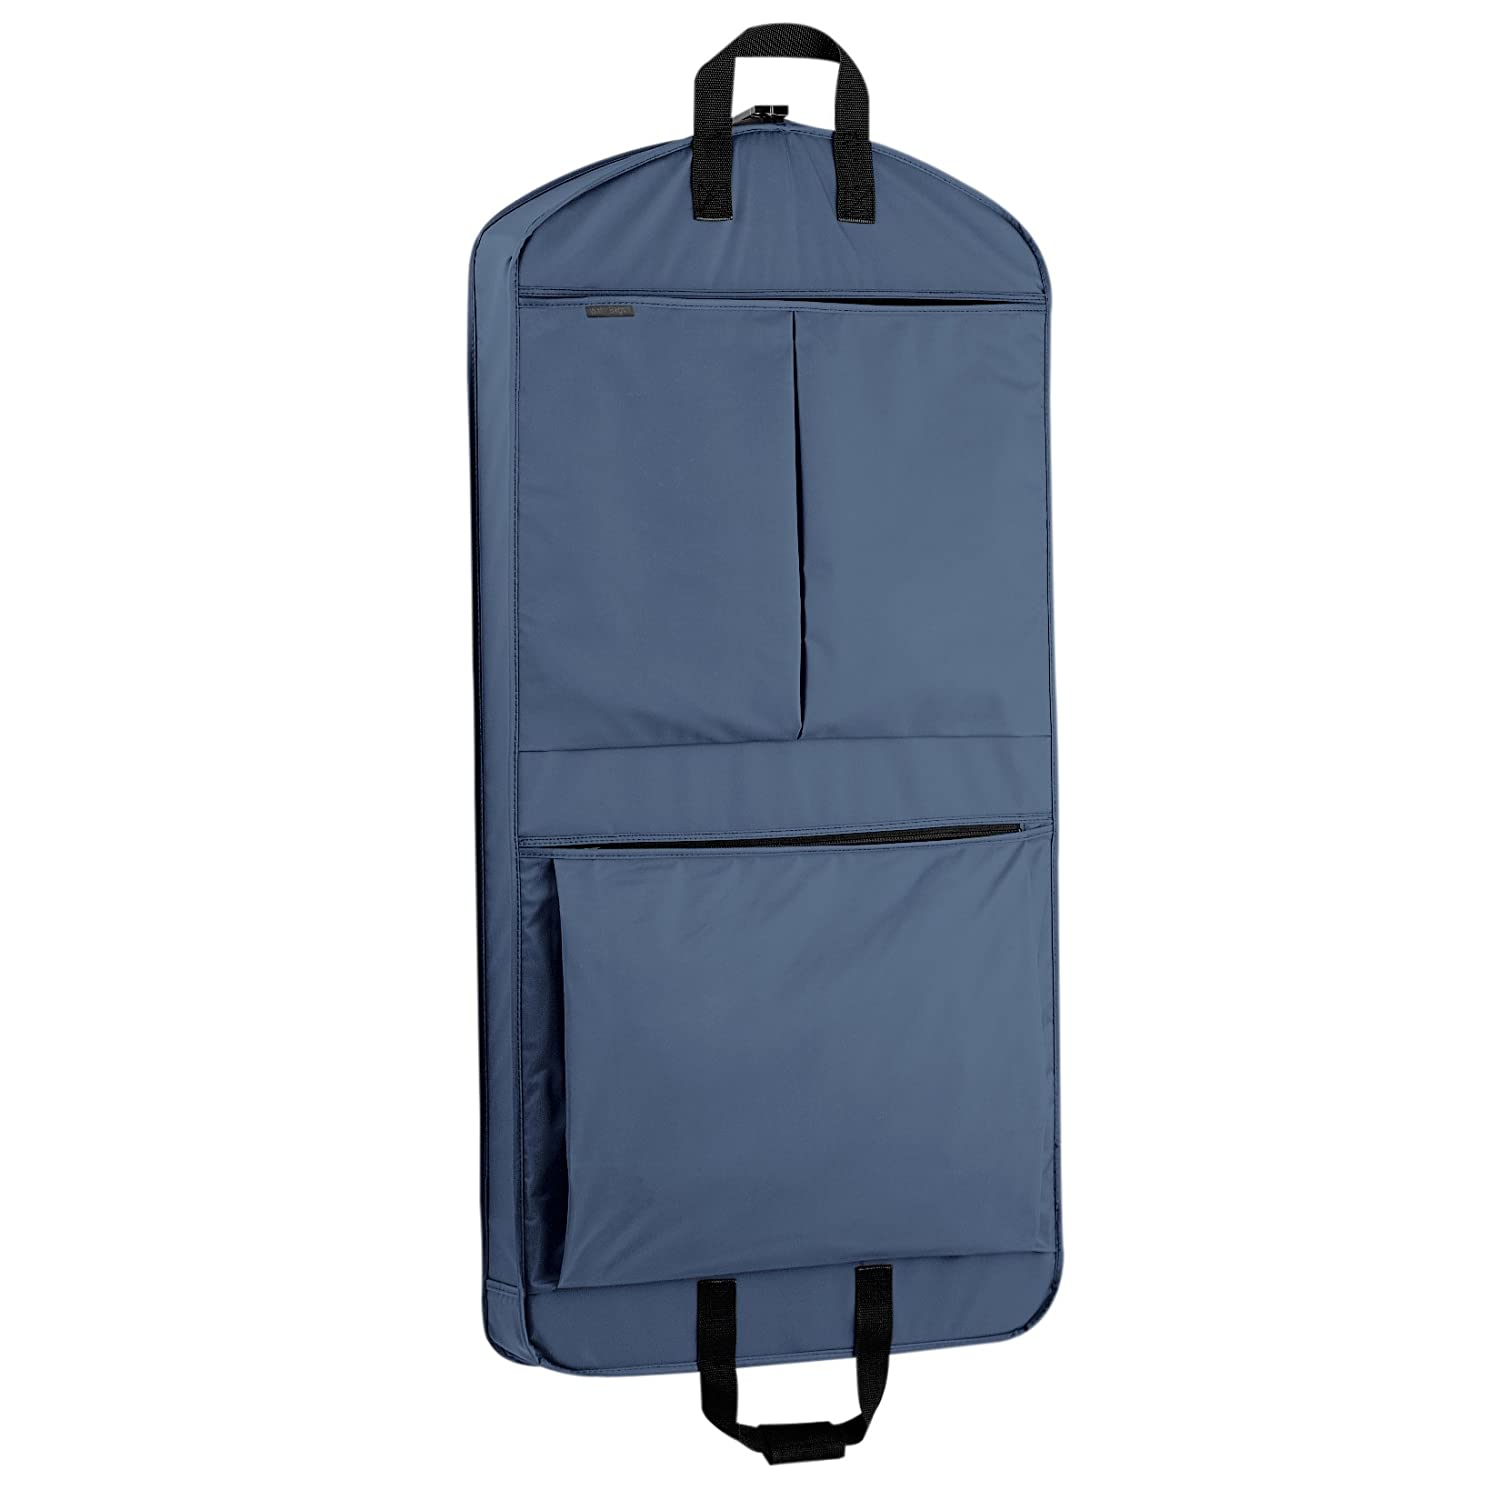 WallyBags 45-inch Suit Length, Carry-On, XL Garment Bag with Two Pockets and Extra Capacity 858